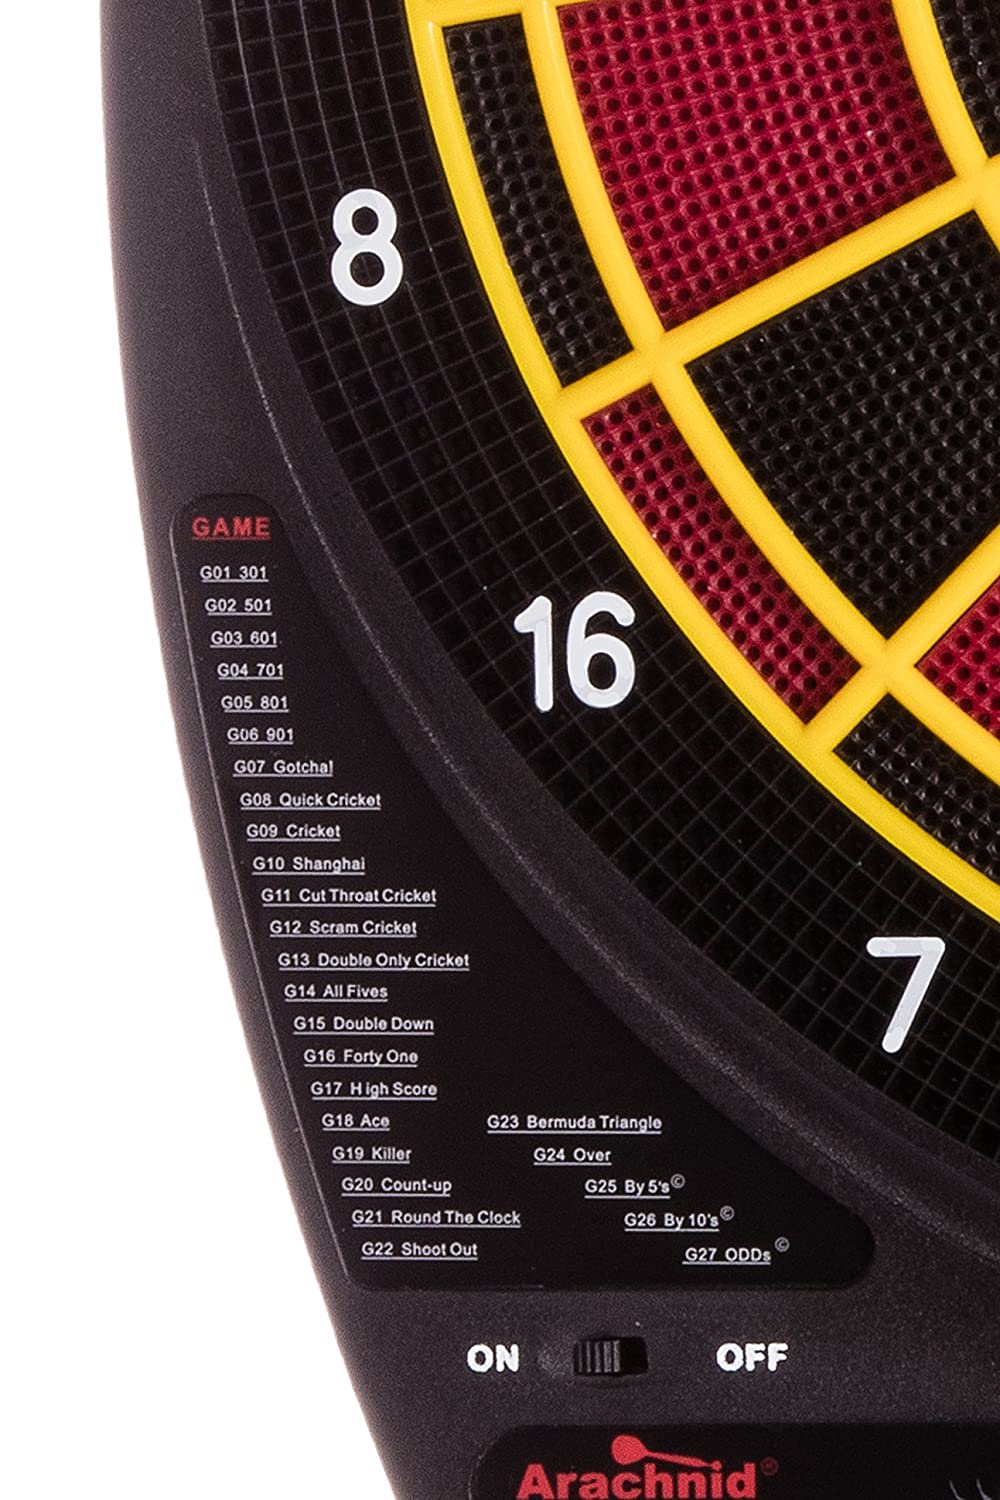 Arachnid Inter Active 3000 Recreational 13 Electronic Dartboard Features 27 Games With 123 Variation For Up To 8 Players